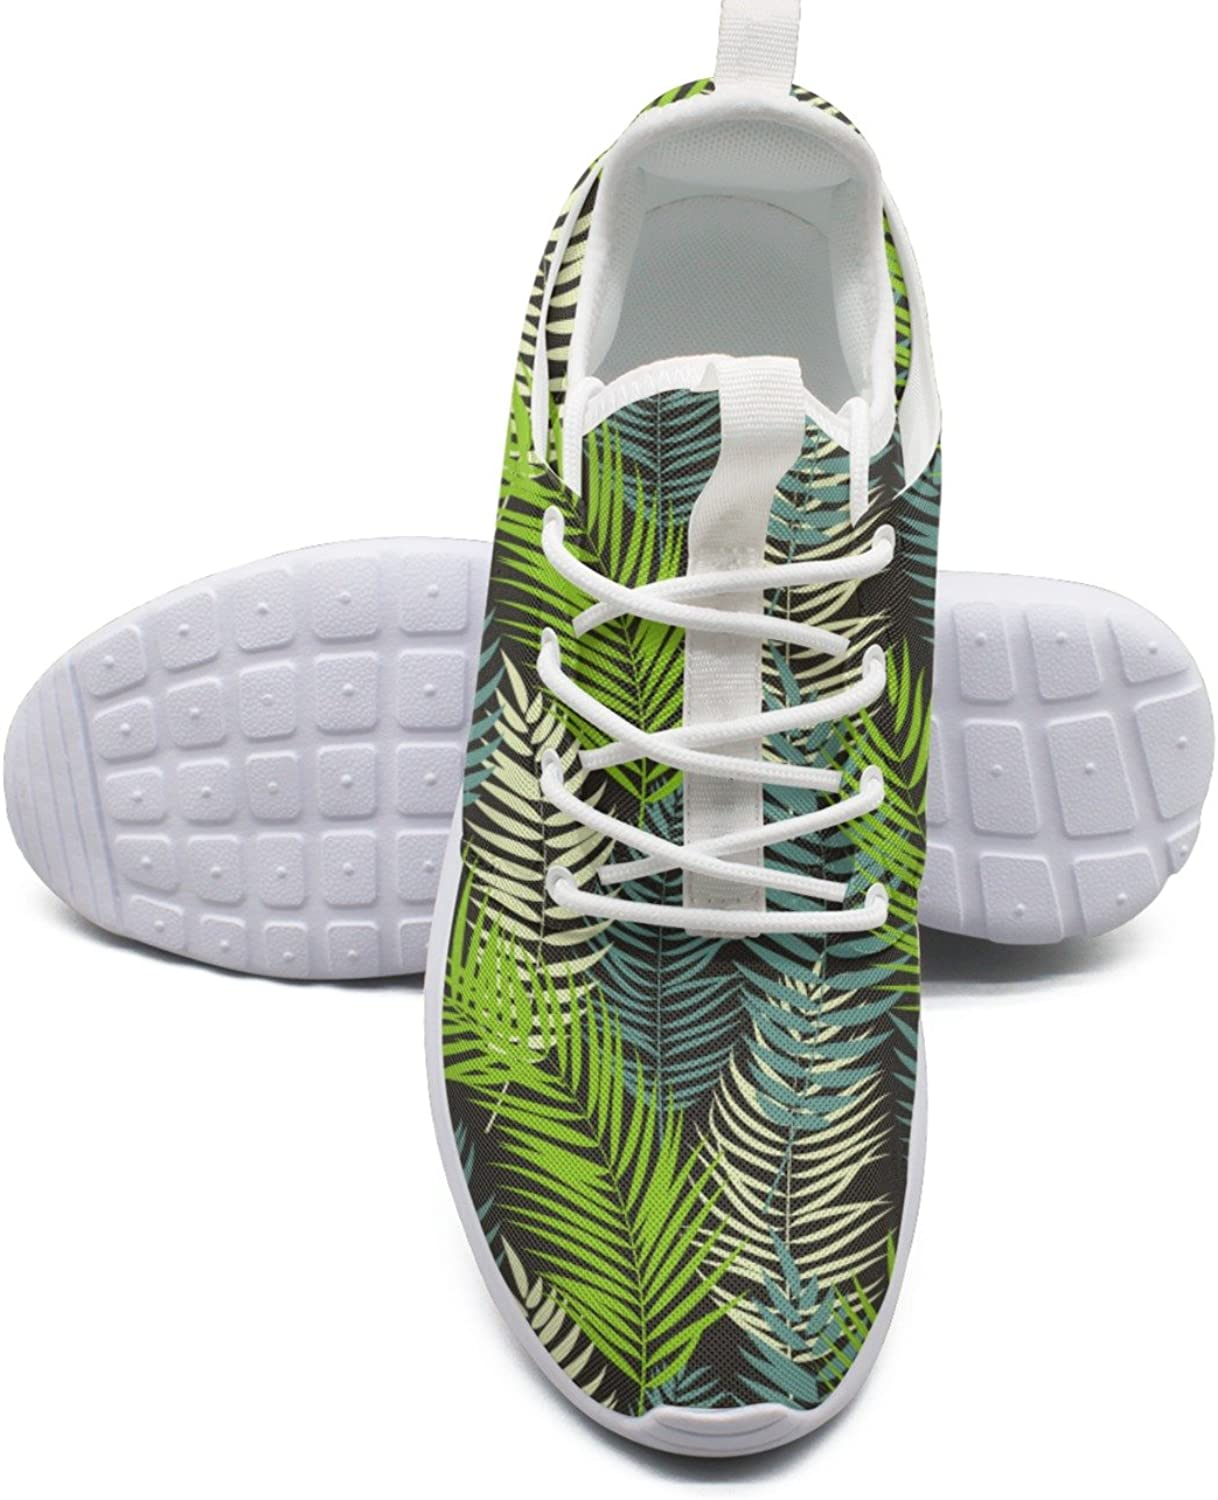 Beautifil Palm Tree Leaf Silhouette Running shoes Women Wide size 10